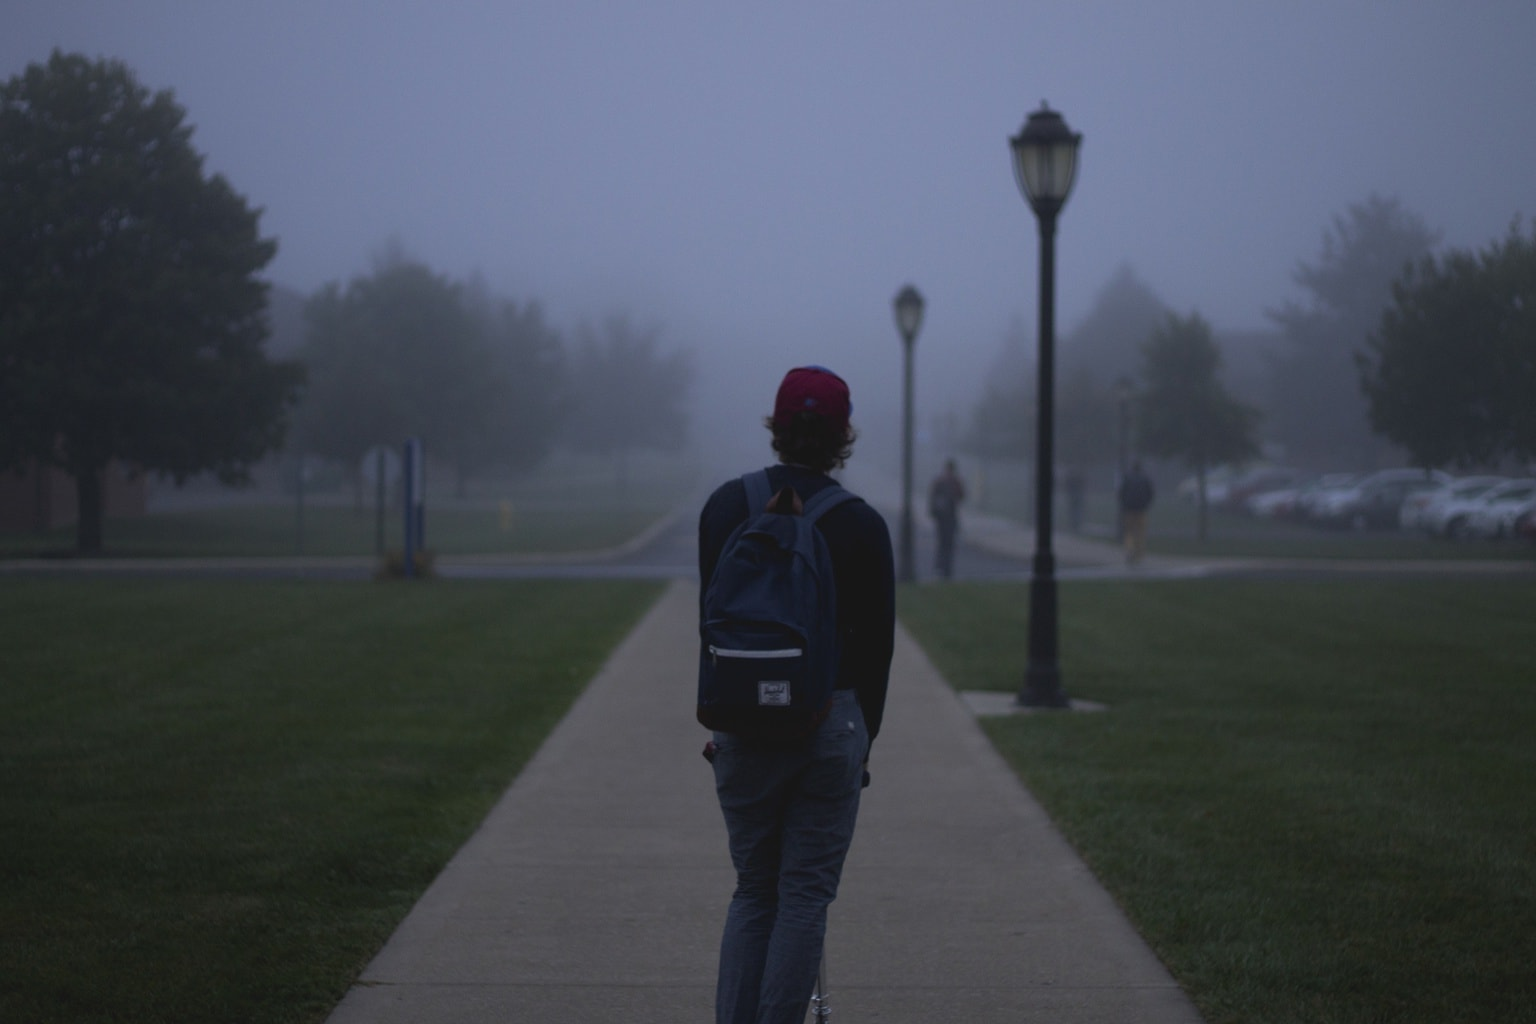 College student in the fog